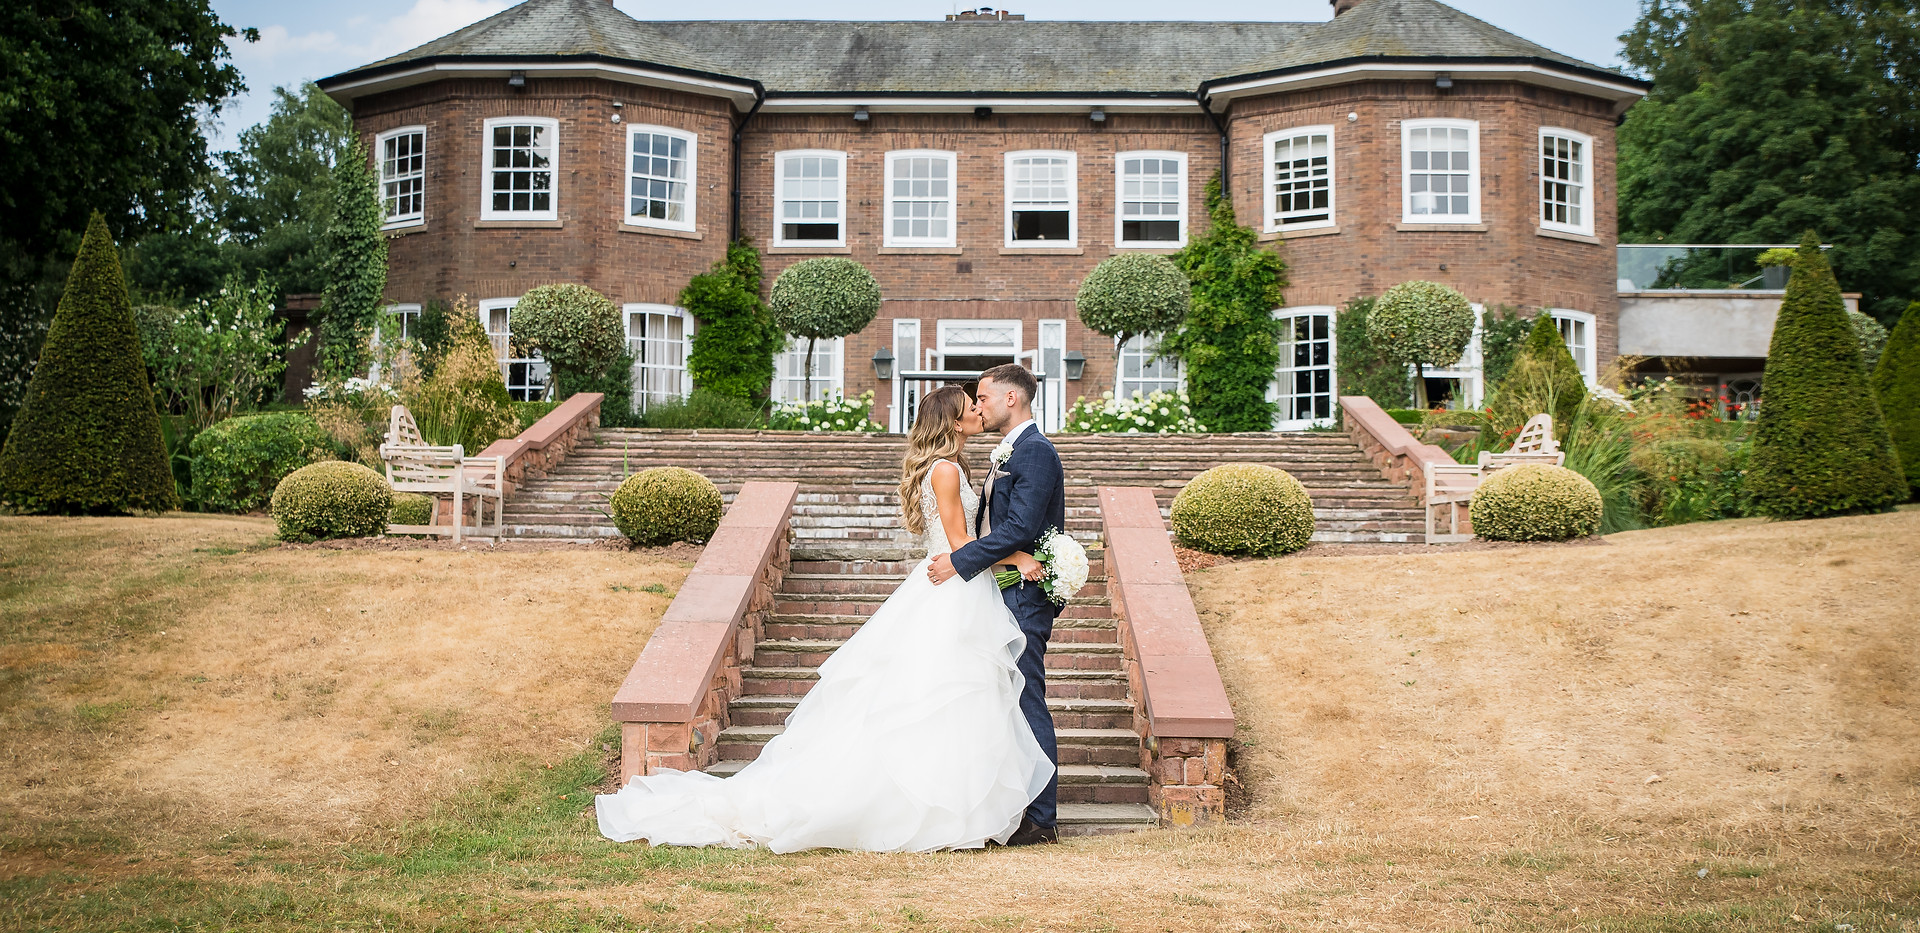 Delamere Manor Wedding Photography___53.